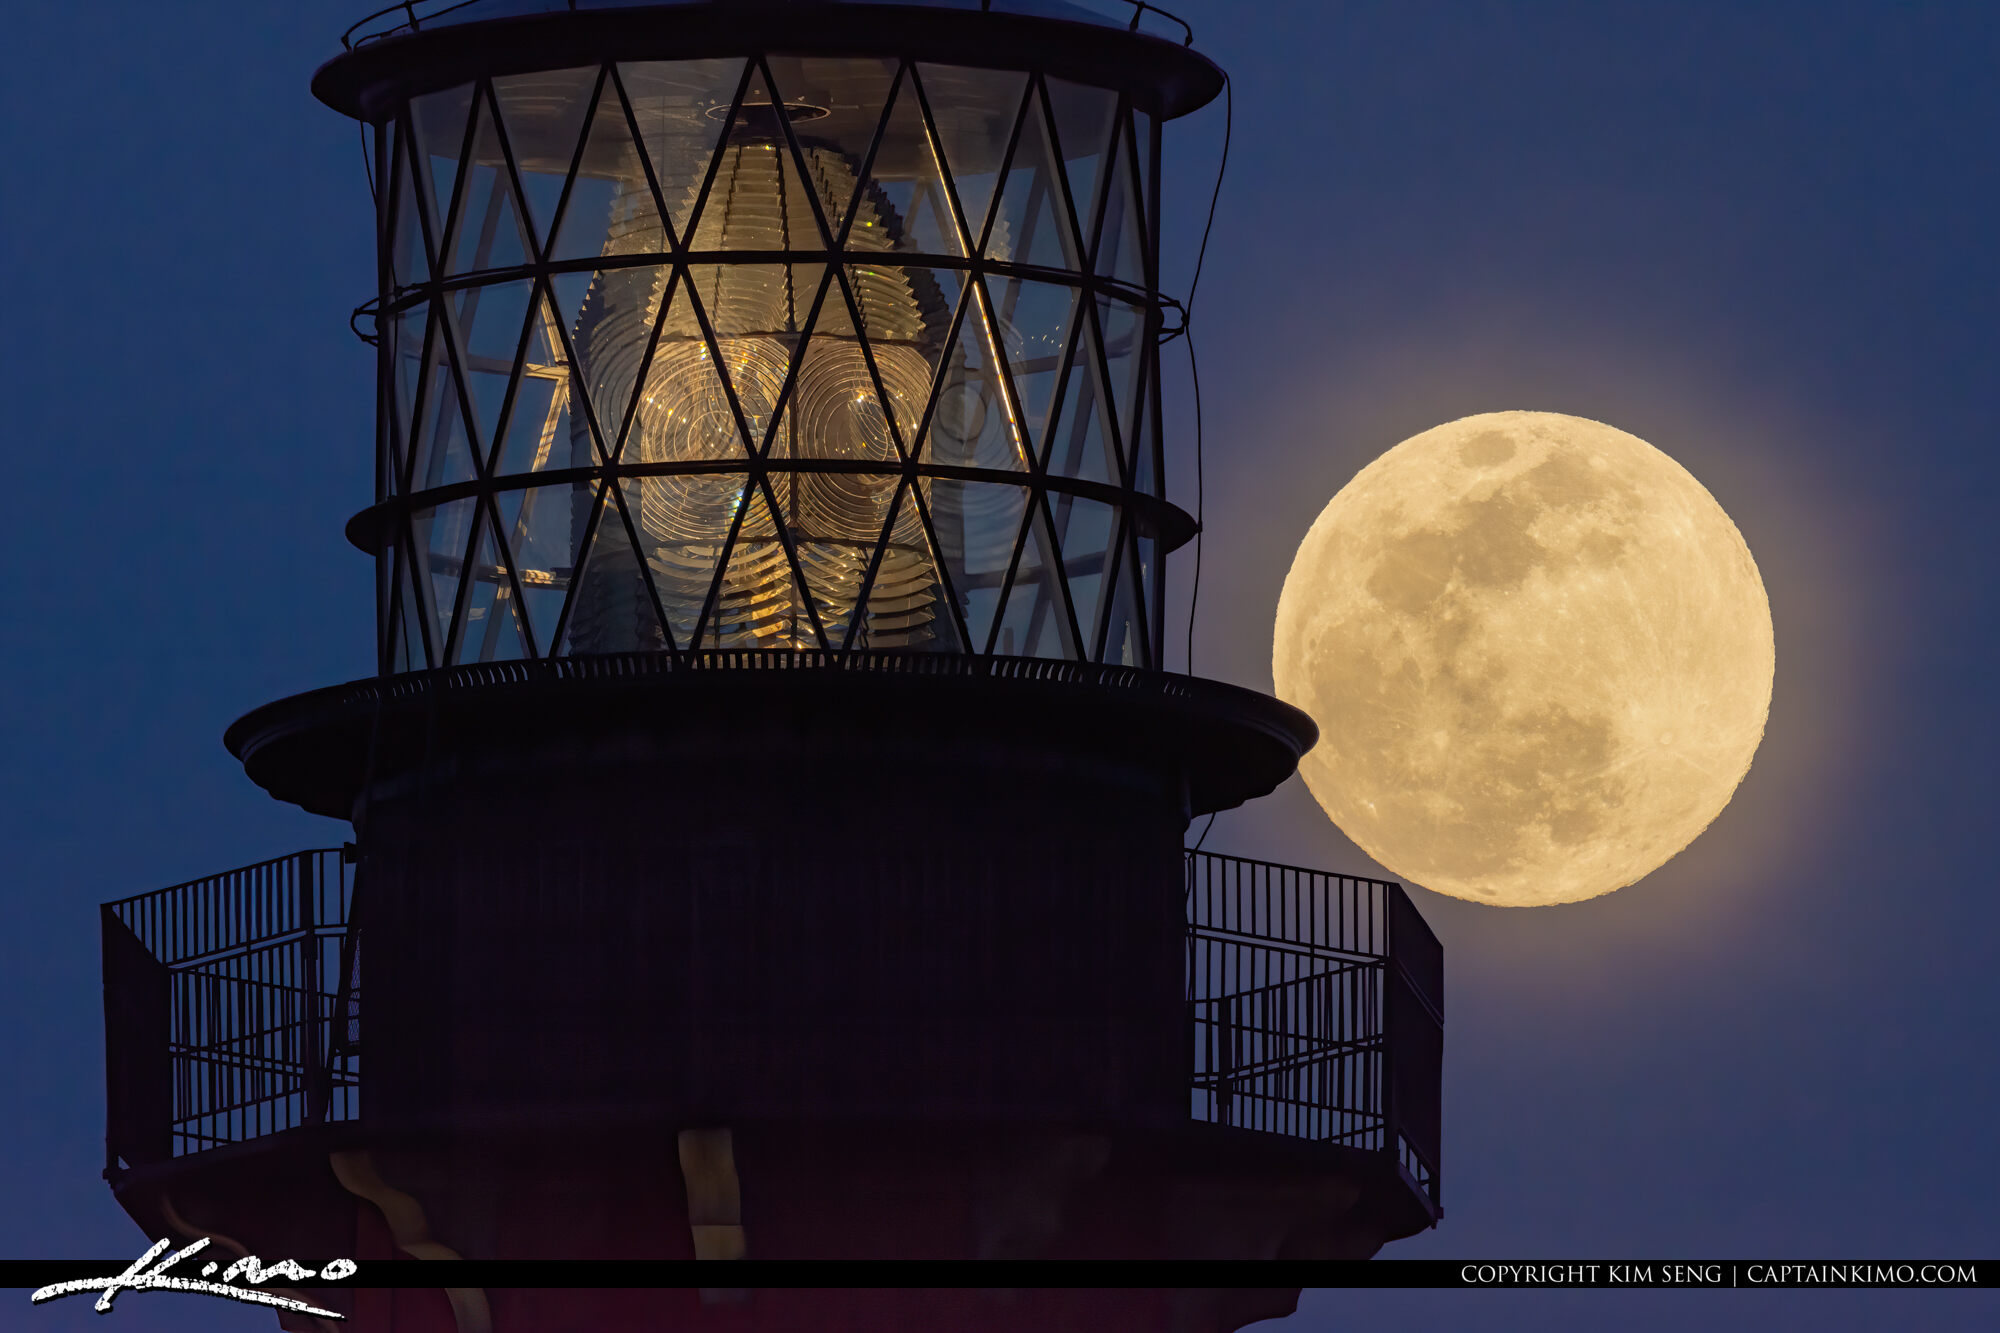 Night Sky Jupiter Lighthouse Moon Rise May 6, 2020